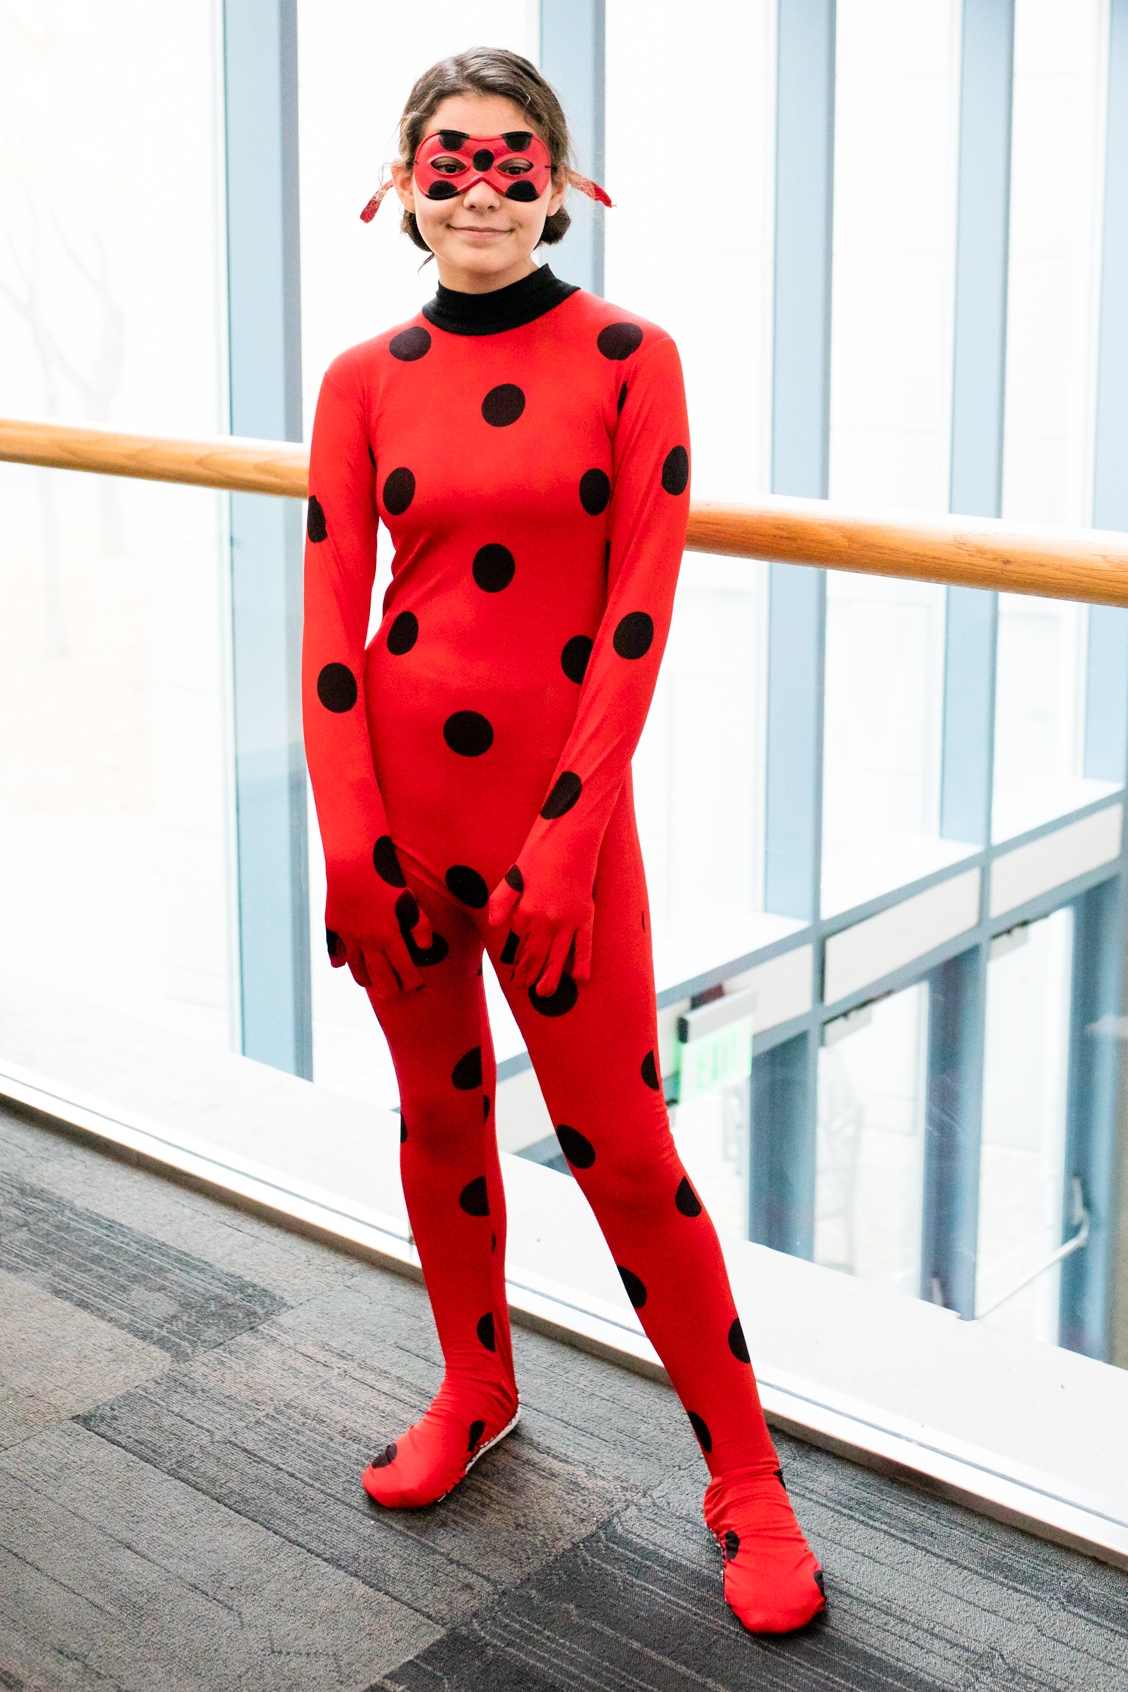 Miraculous Ladybug with Anika Vodicka at Heroes and Villains FanFest and Walker Stalker | Lenkaland Photography